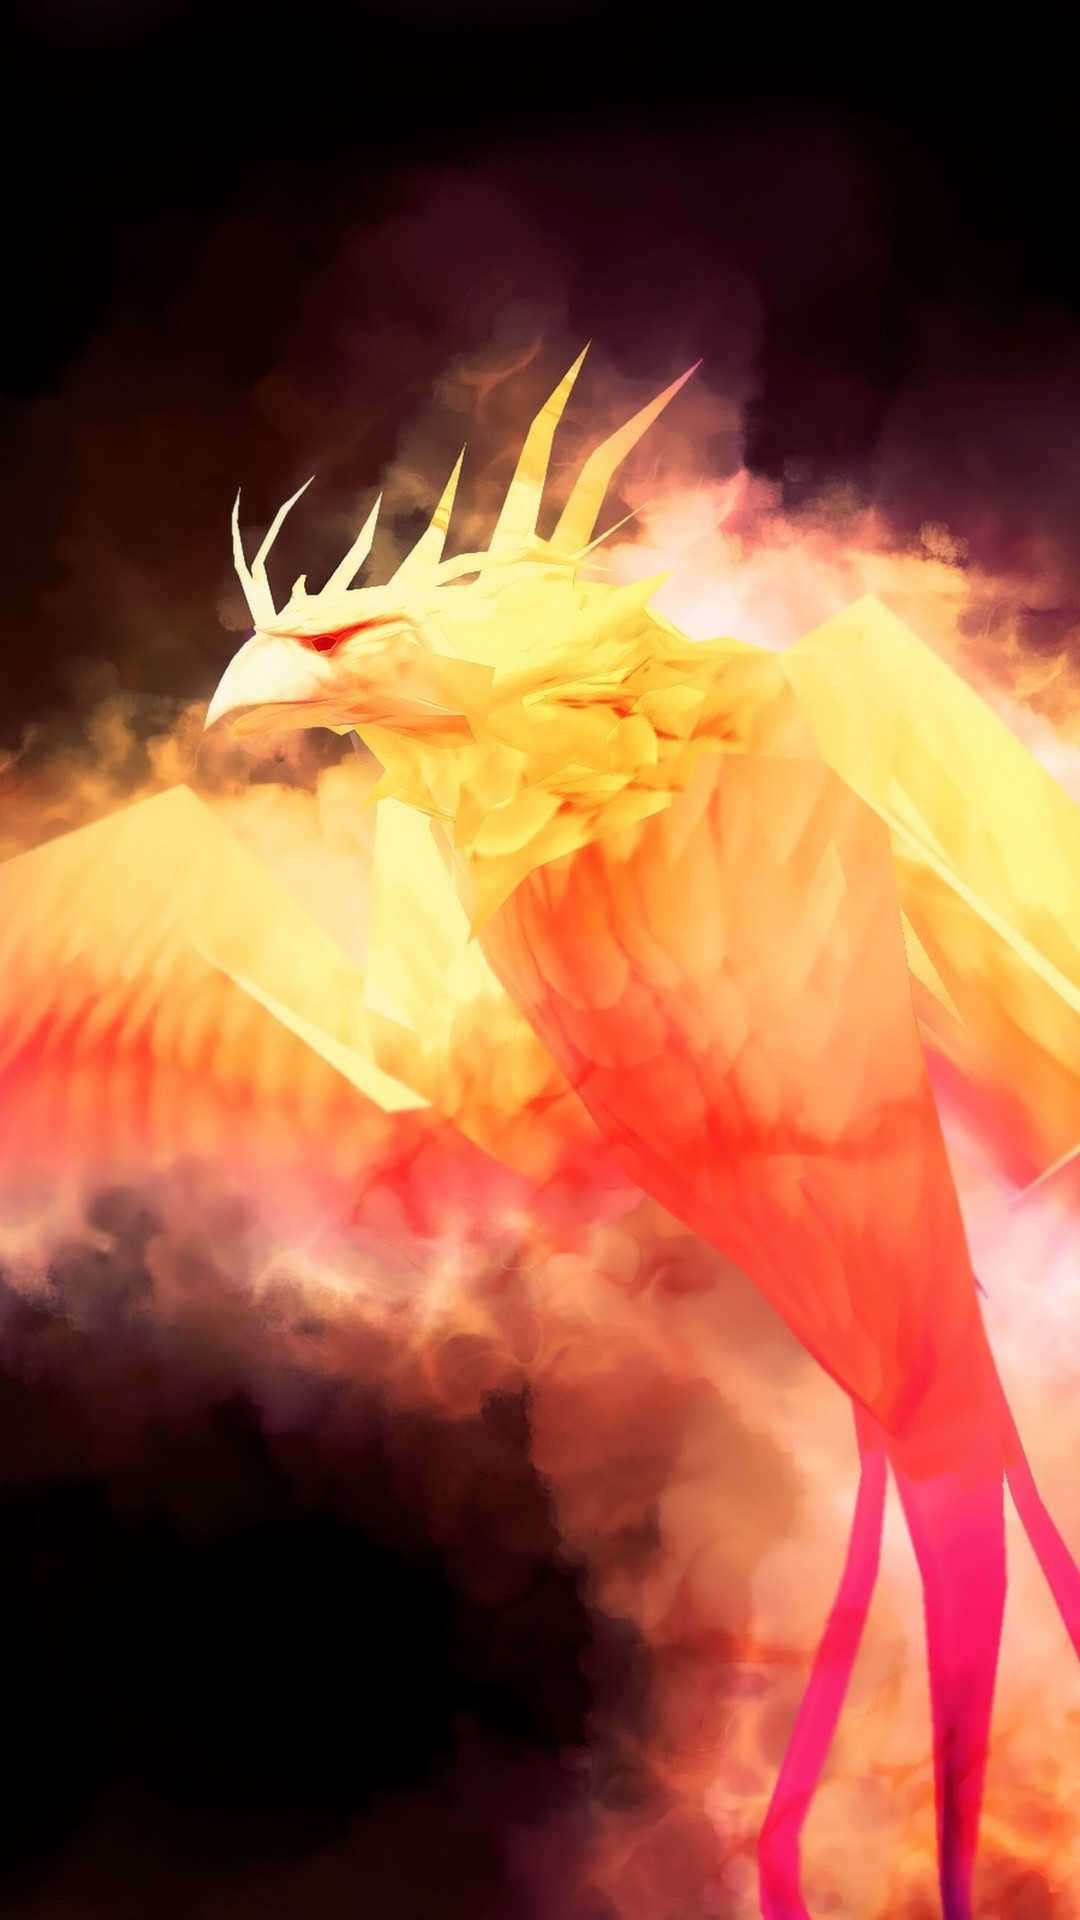 Wallpapers Phone Phoenix Images   2019 Android Wallpapers 1080x1920